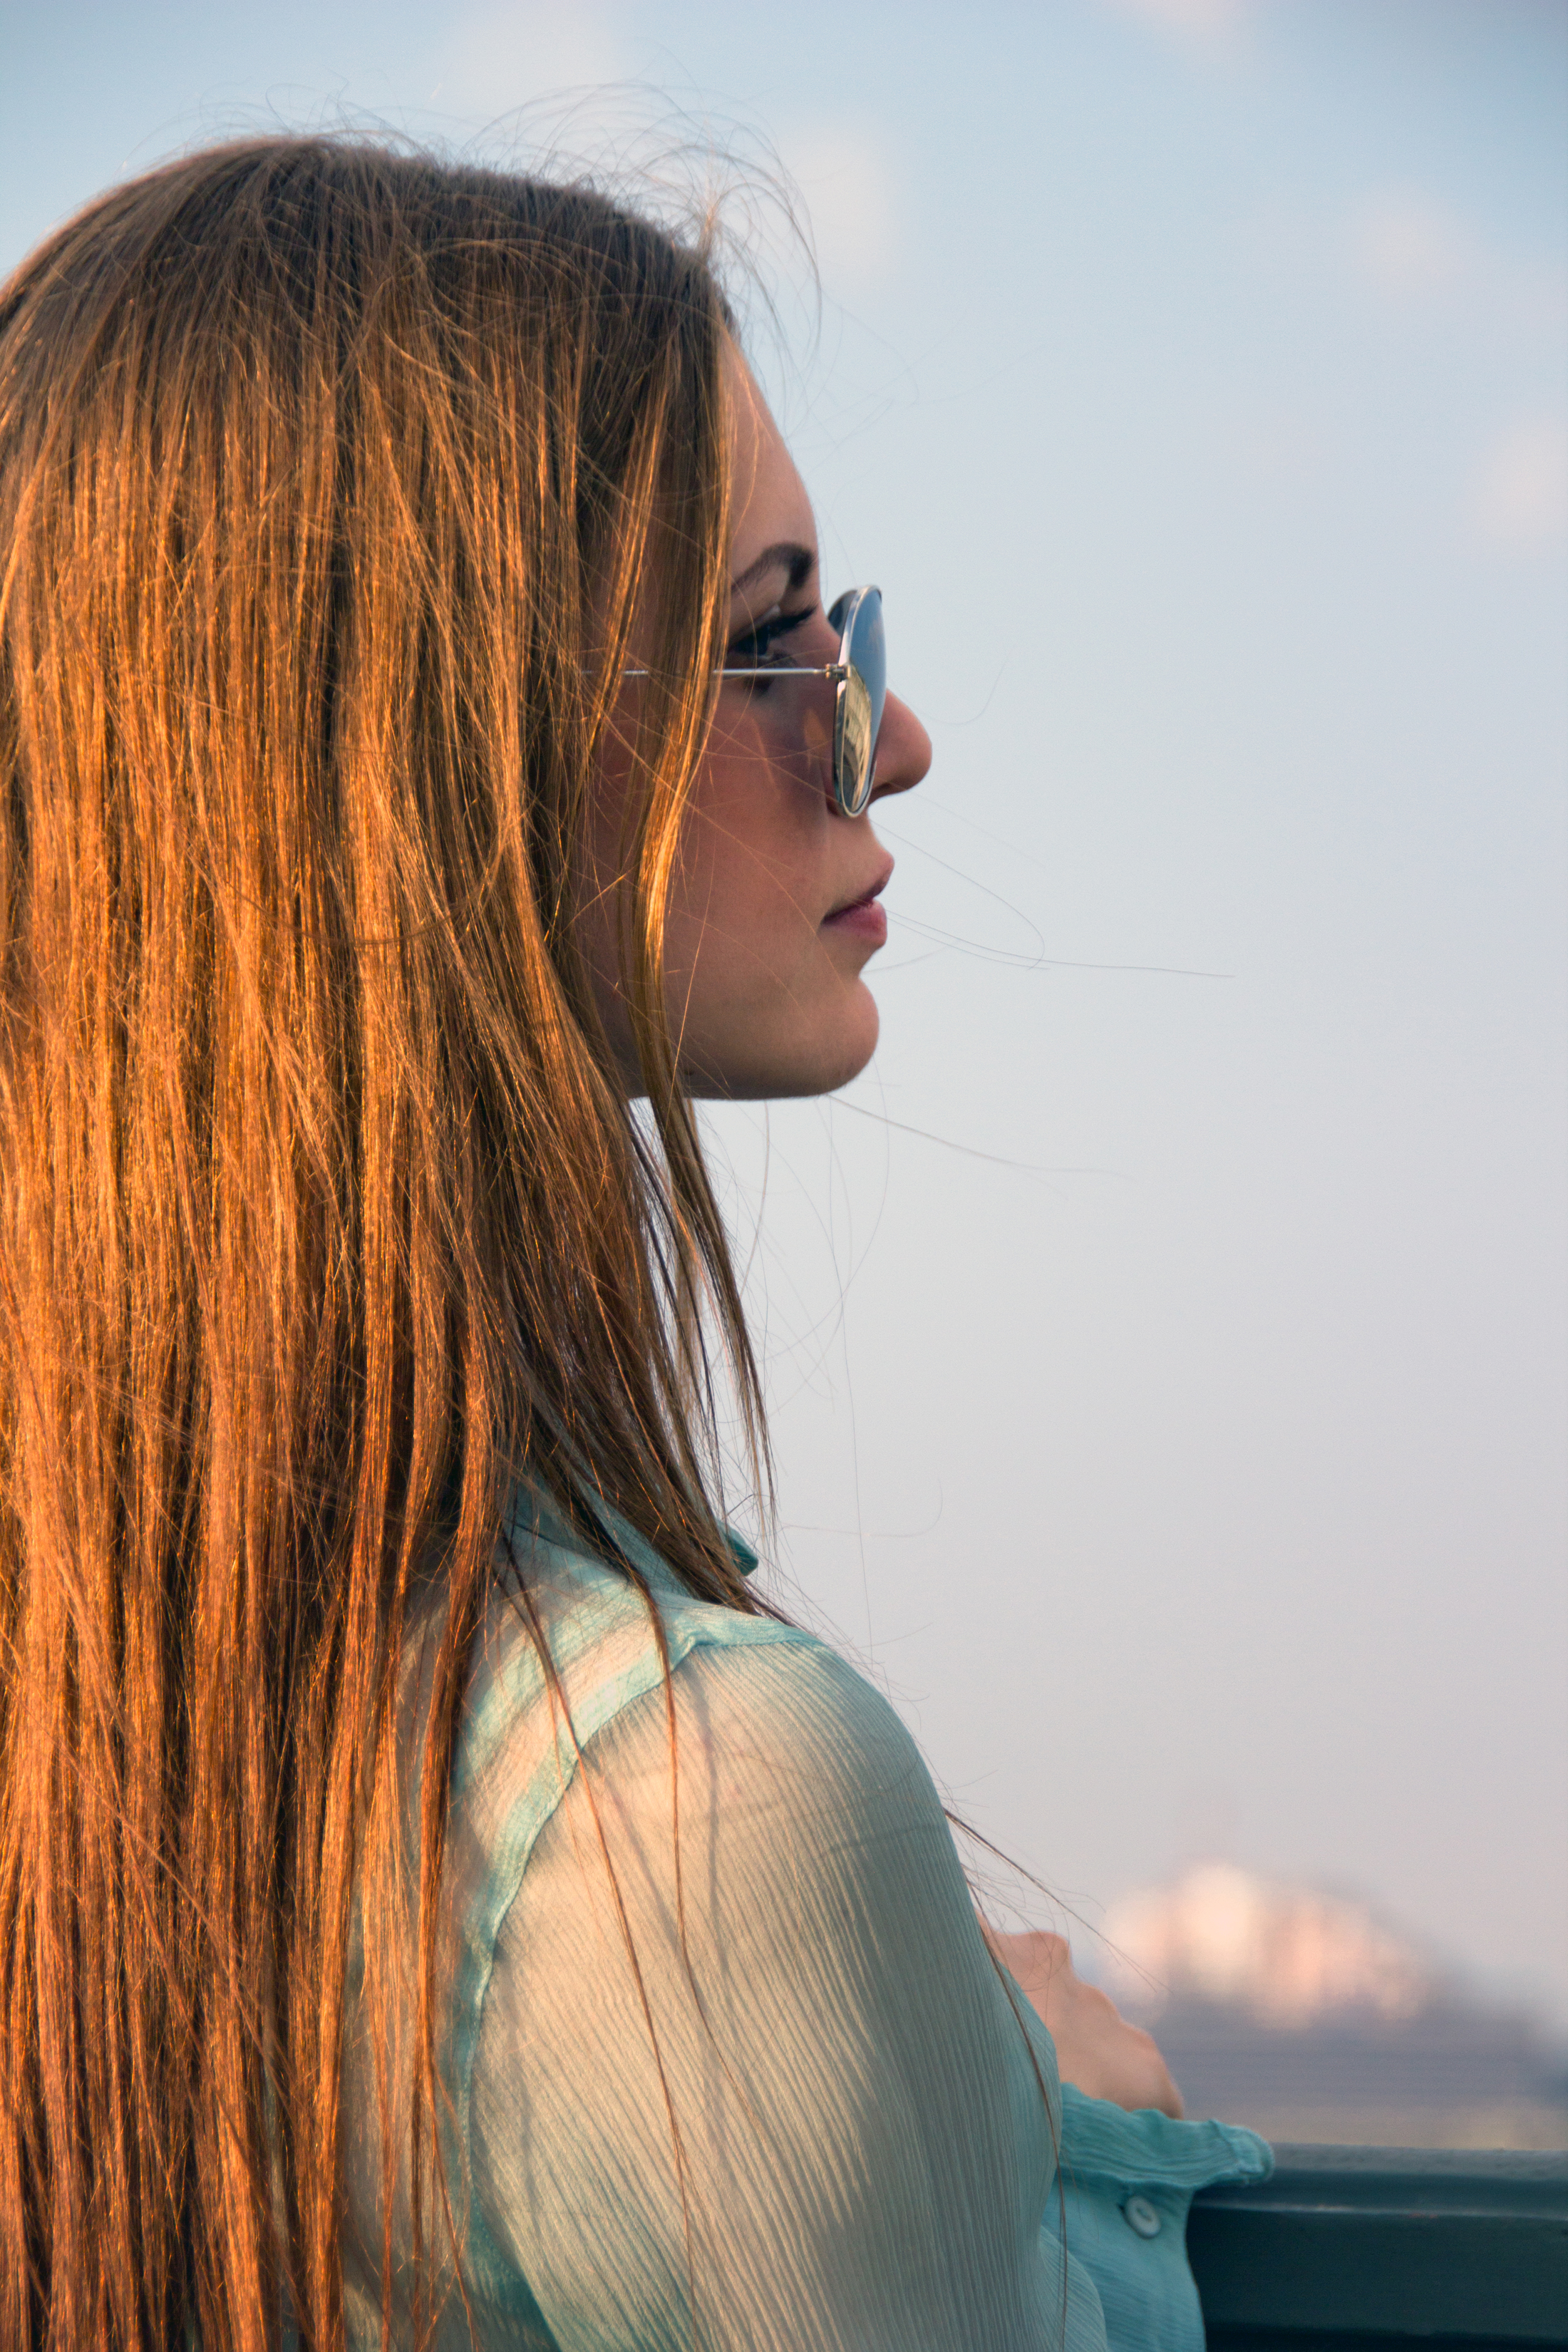 Woman with glasses, Attractive, Look, Summer, Sky, HQ Photo